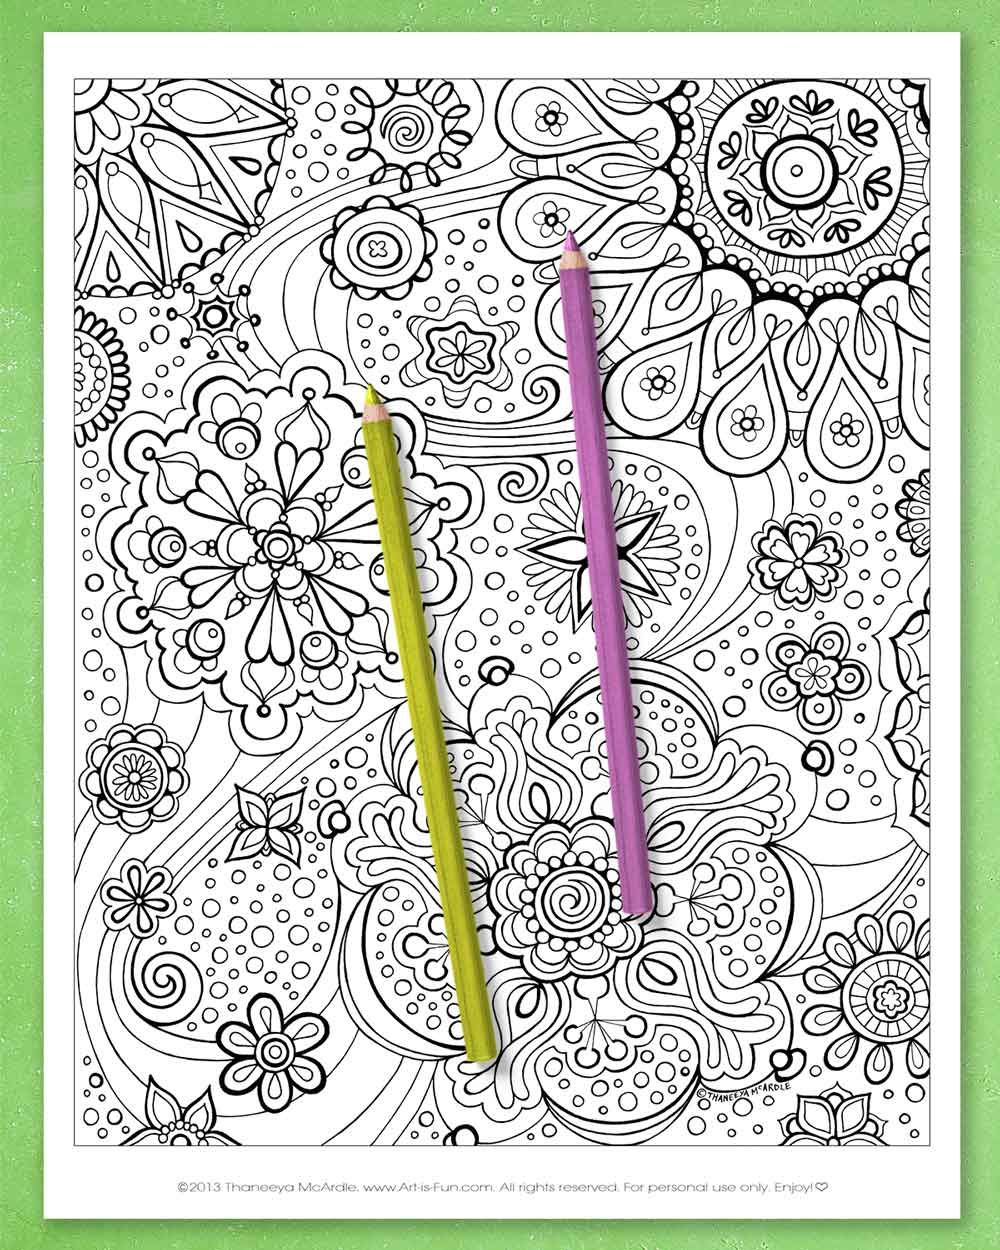 Abstract Coloring Pages Printable E Book Of Groovy Abstract Designs For You To Color Art Is Fun In 2020 Abstract Coloring Pages Coloring Pages Mandala Coloring Pages